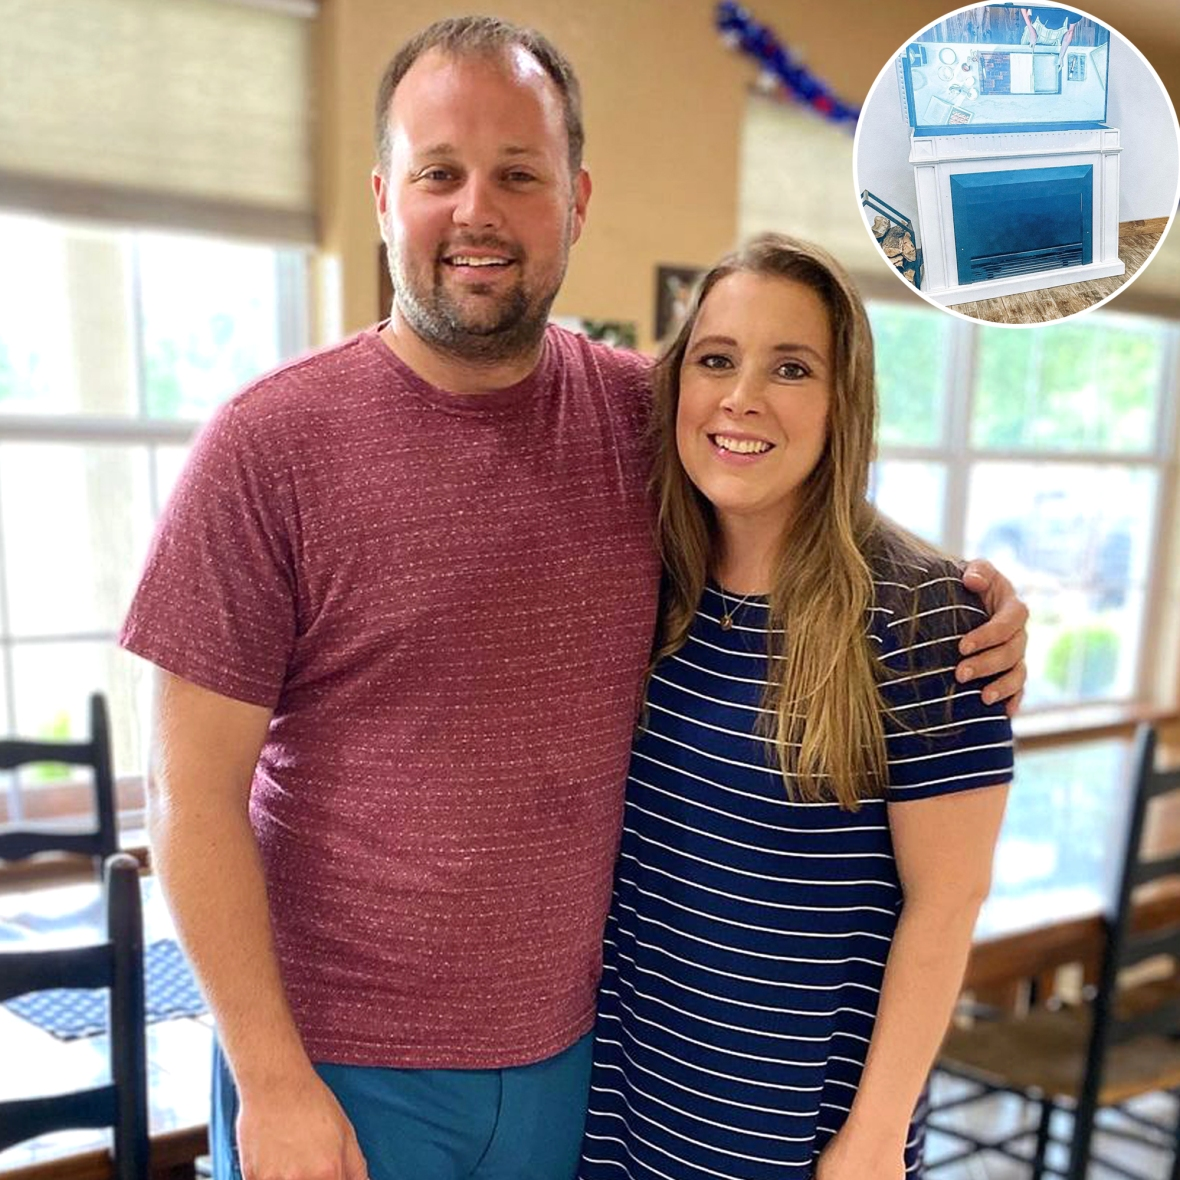 Anna Duggar Proudly Shows Off Home Renovations Done by Husband Josh: From 'a Fireplace to a TV Stand!'